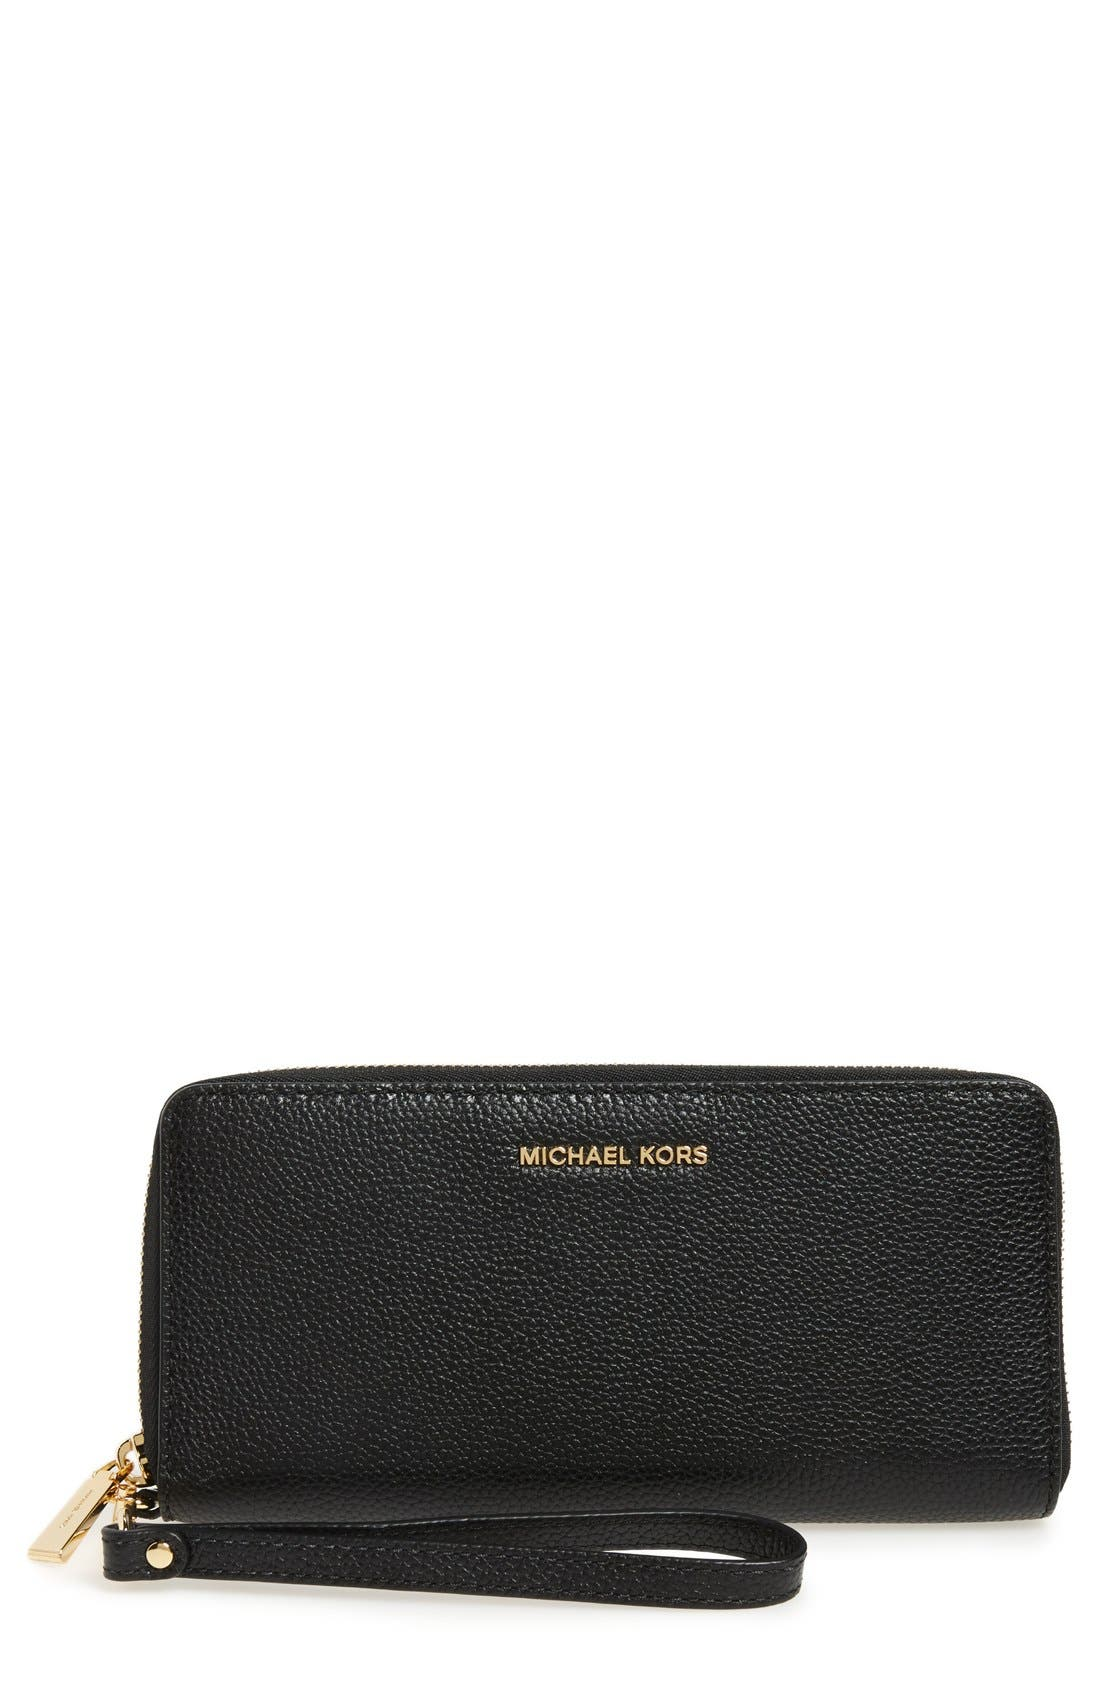 'Mercer' Leather Continental Wallet,                         Main,                         color, Black/ Gold